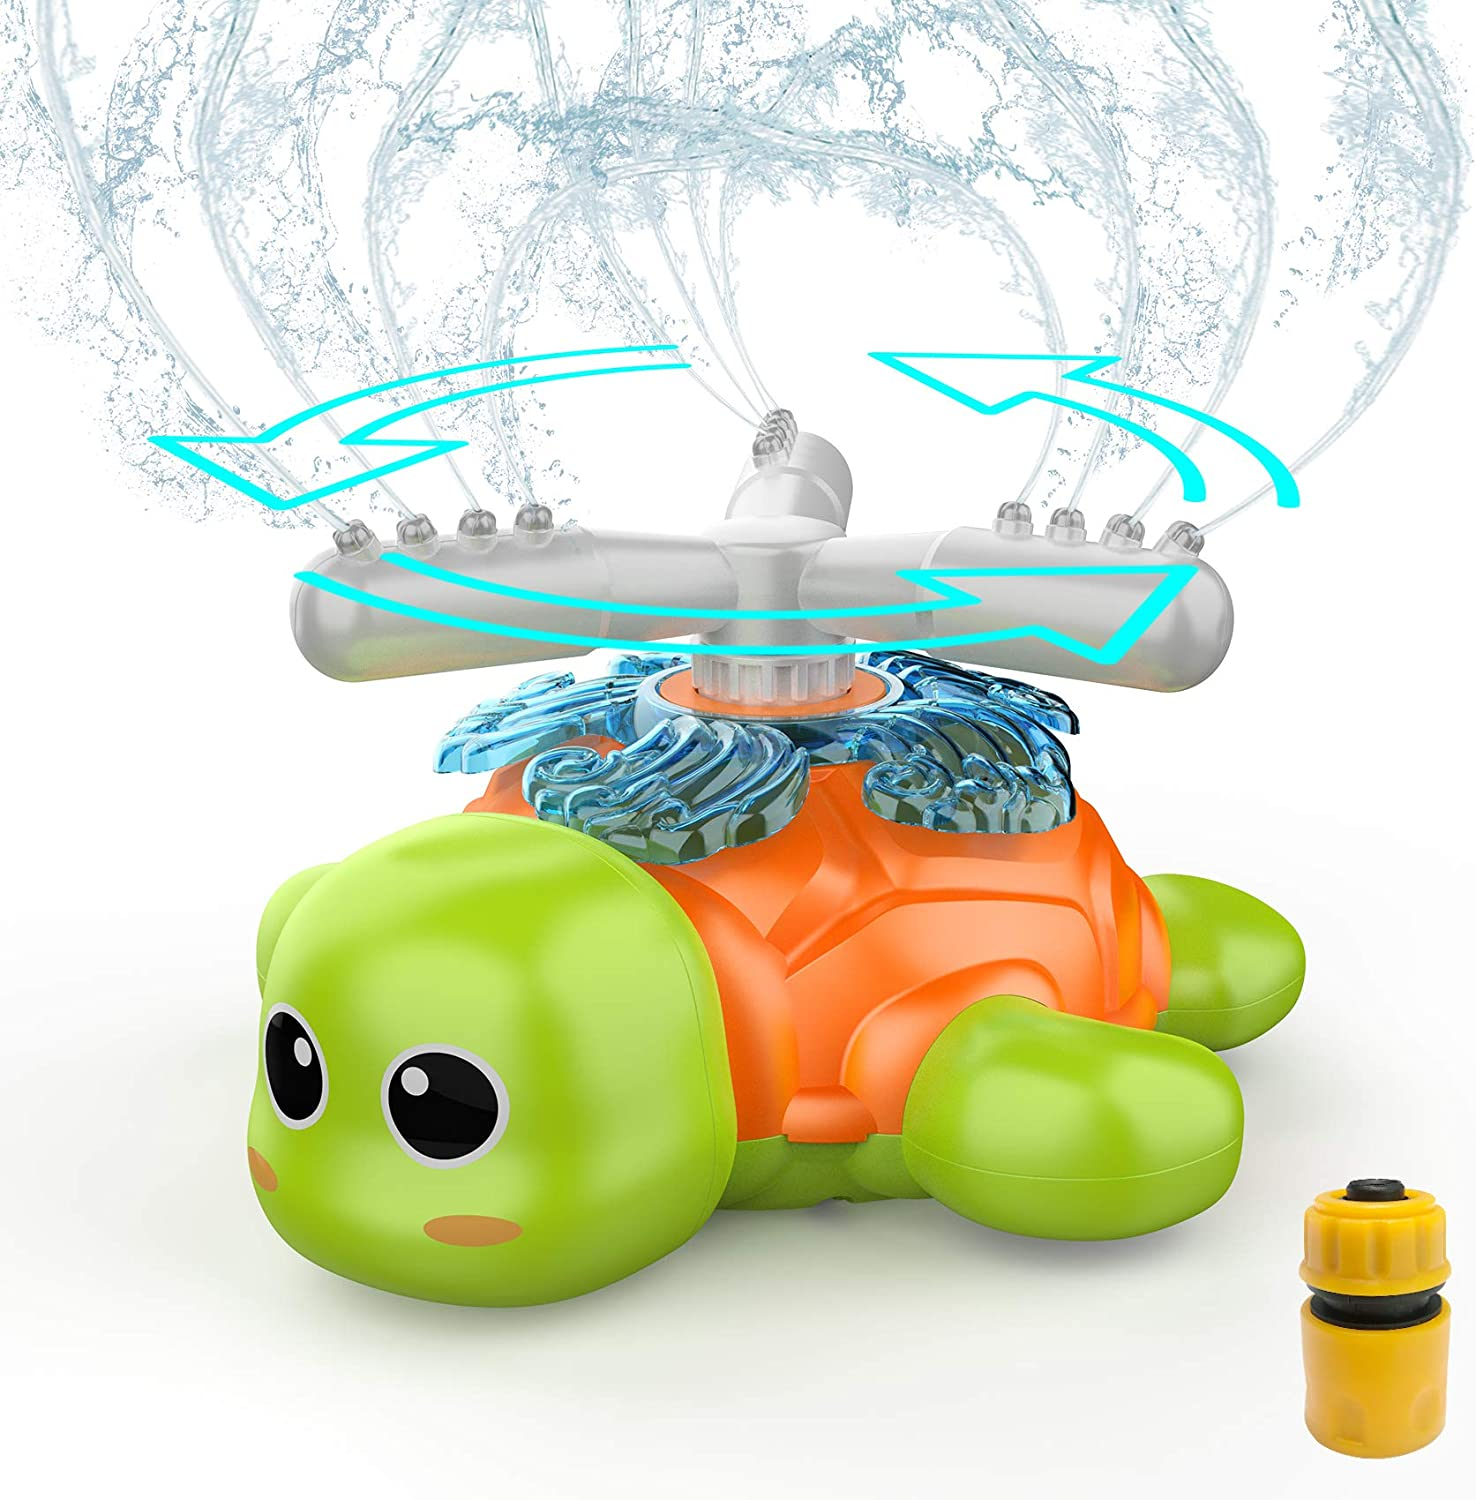 FOSUBOO Outdoor Sprinkler Toys for Kids Water price 40% OFF Cheap Sale Tod